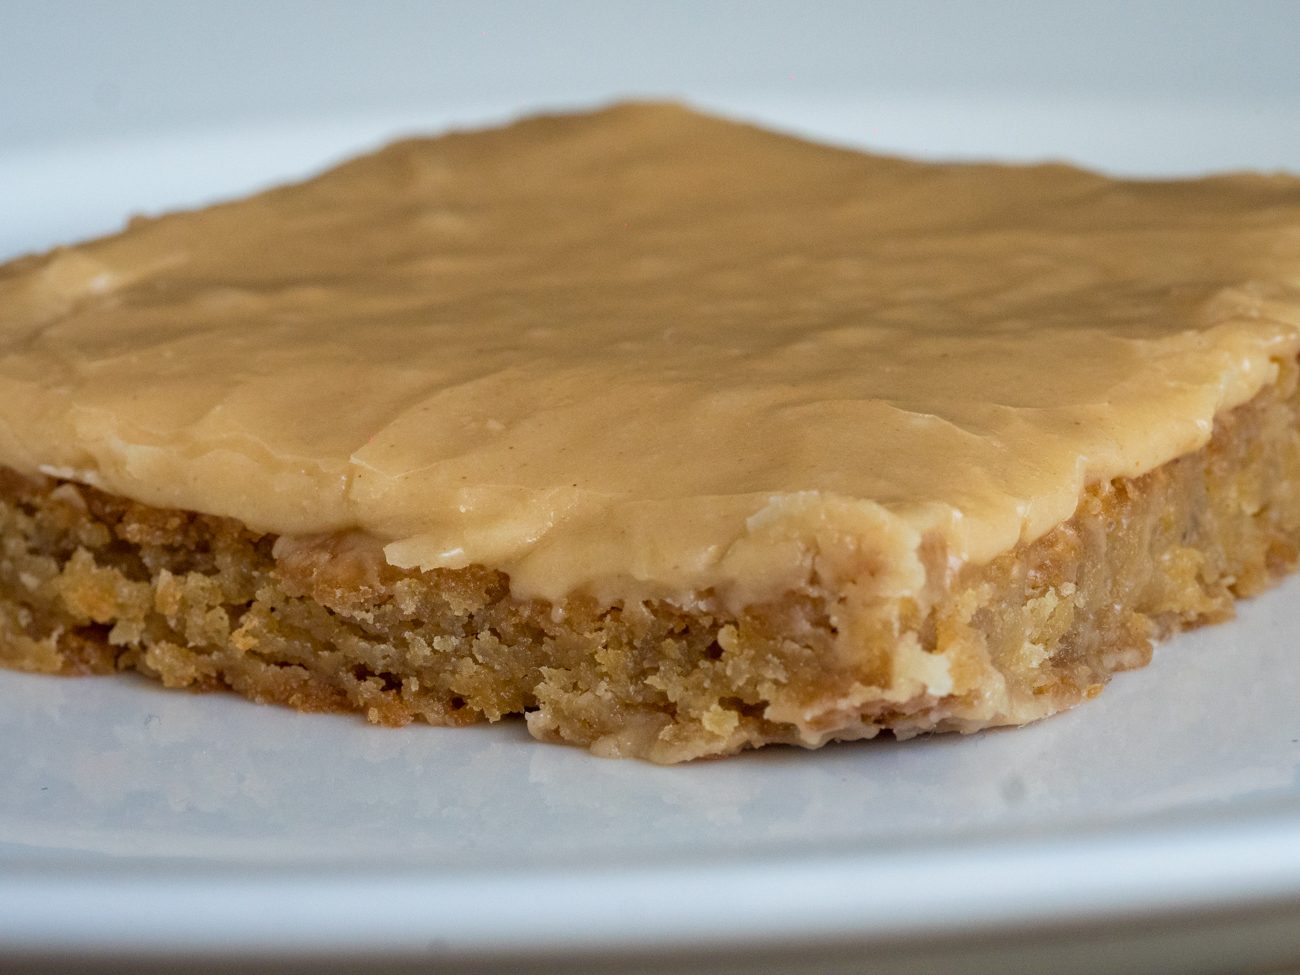 Peanut Butter Sheet Cookie horizontal 6